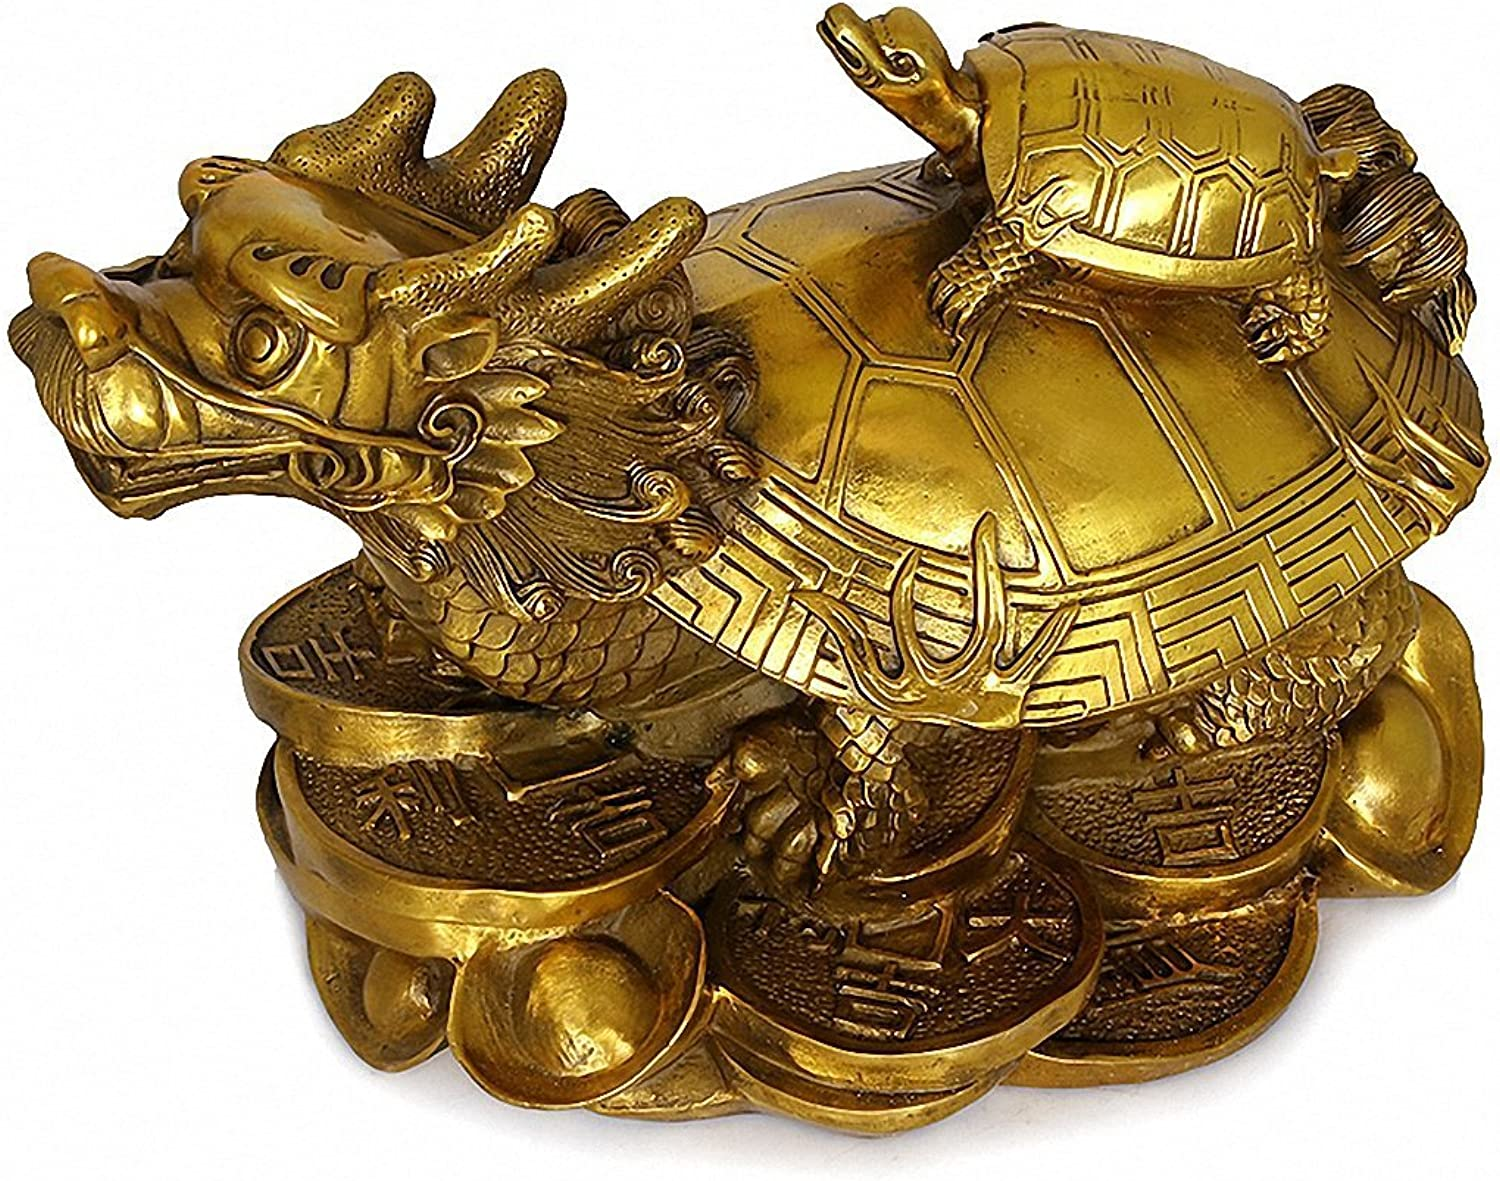 Wenmily Feng Shui Wealth Prosperity Brass Dragon Turtle Statue + Set of 10 Lucky Charm Ancient Coins on Red String,Best Housewarming Congratulatory Gift,Feng Shui Decor